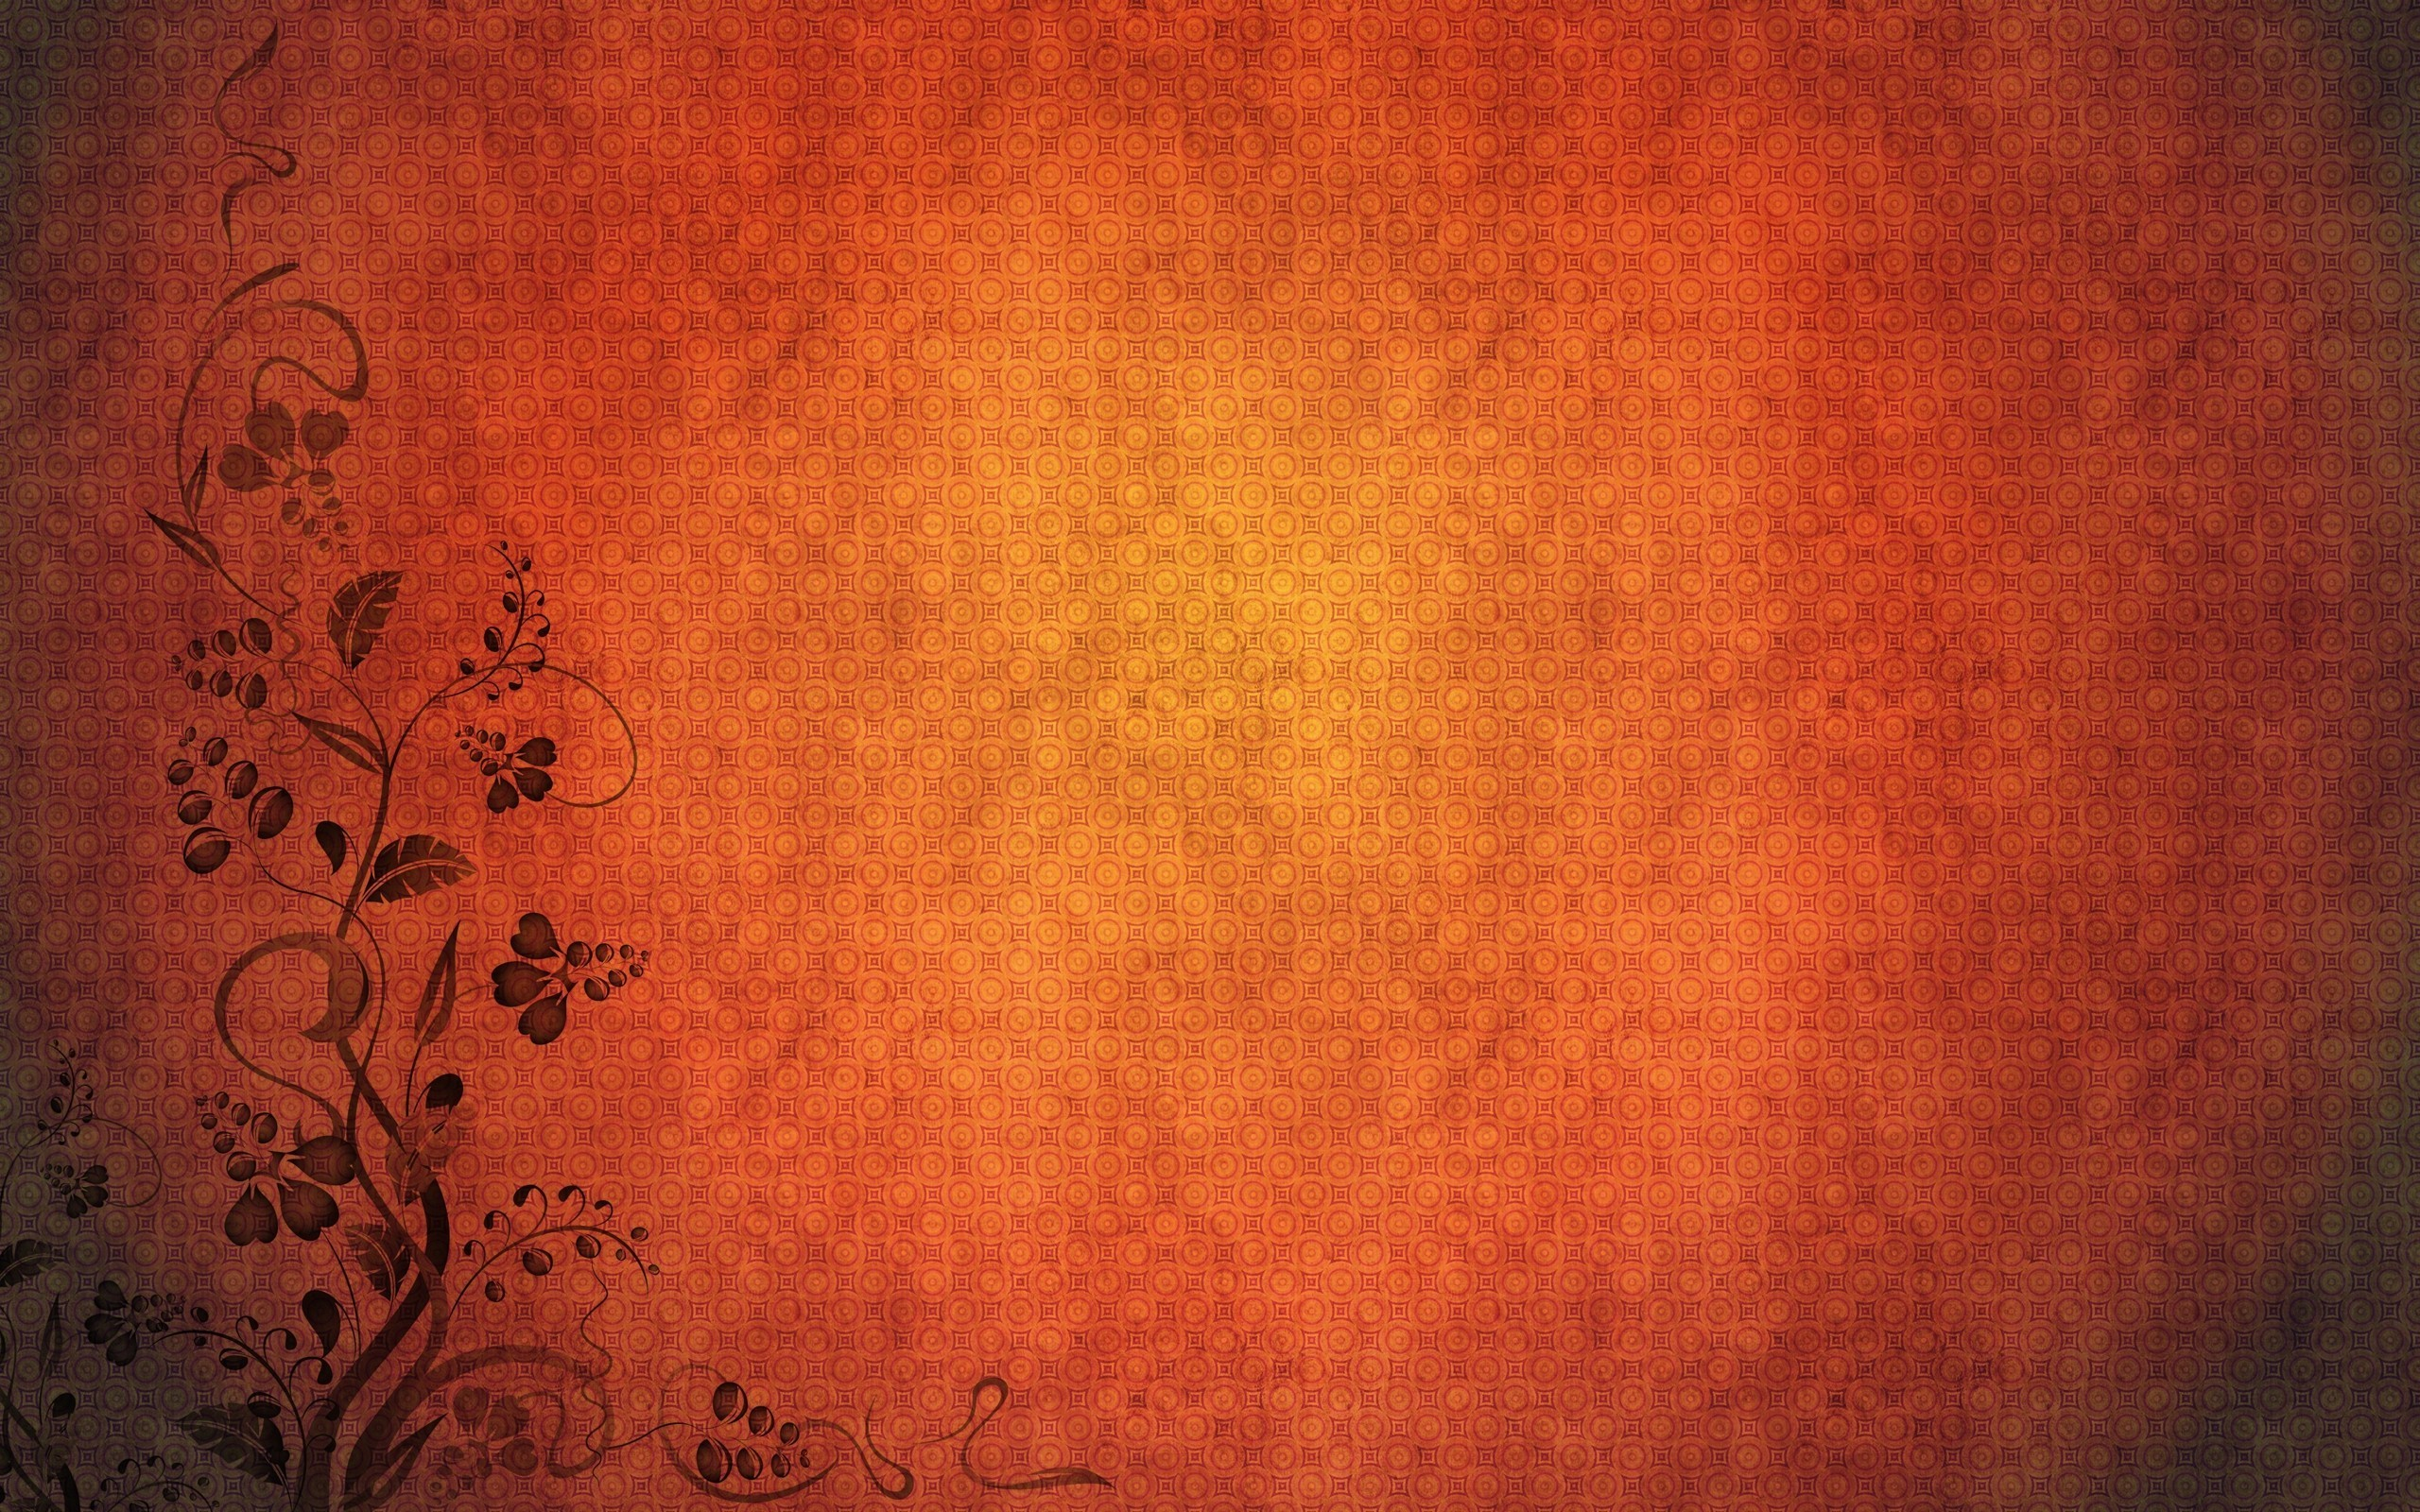 2560x1600 Minimalistic orange patterns simple background textures wallpaper